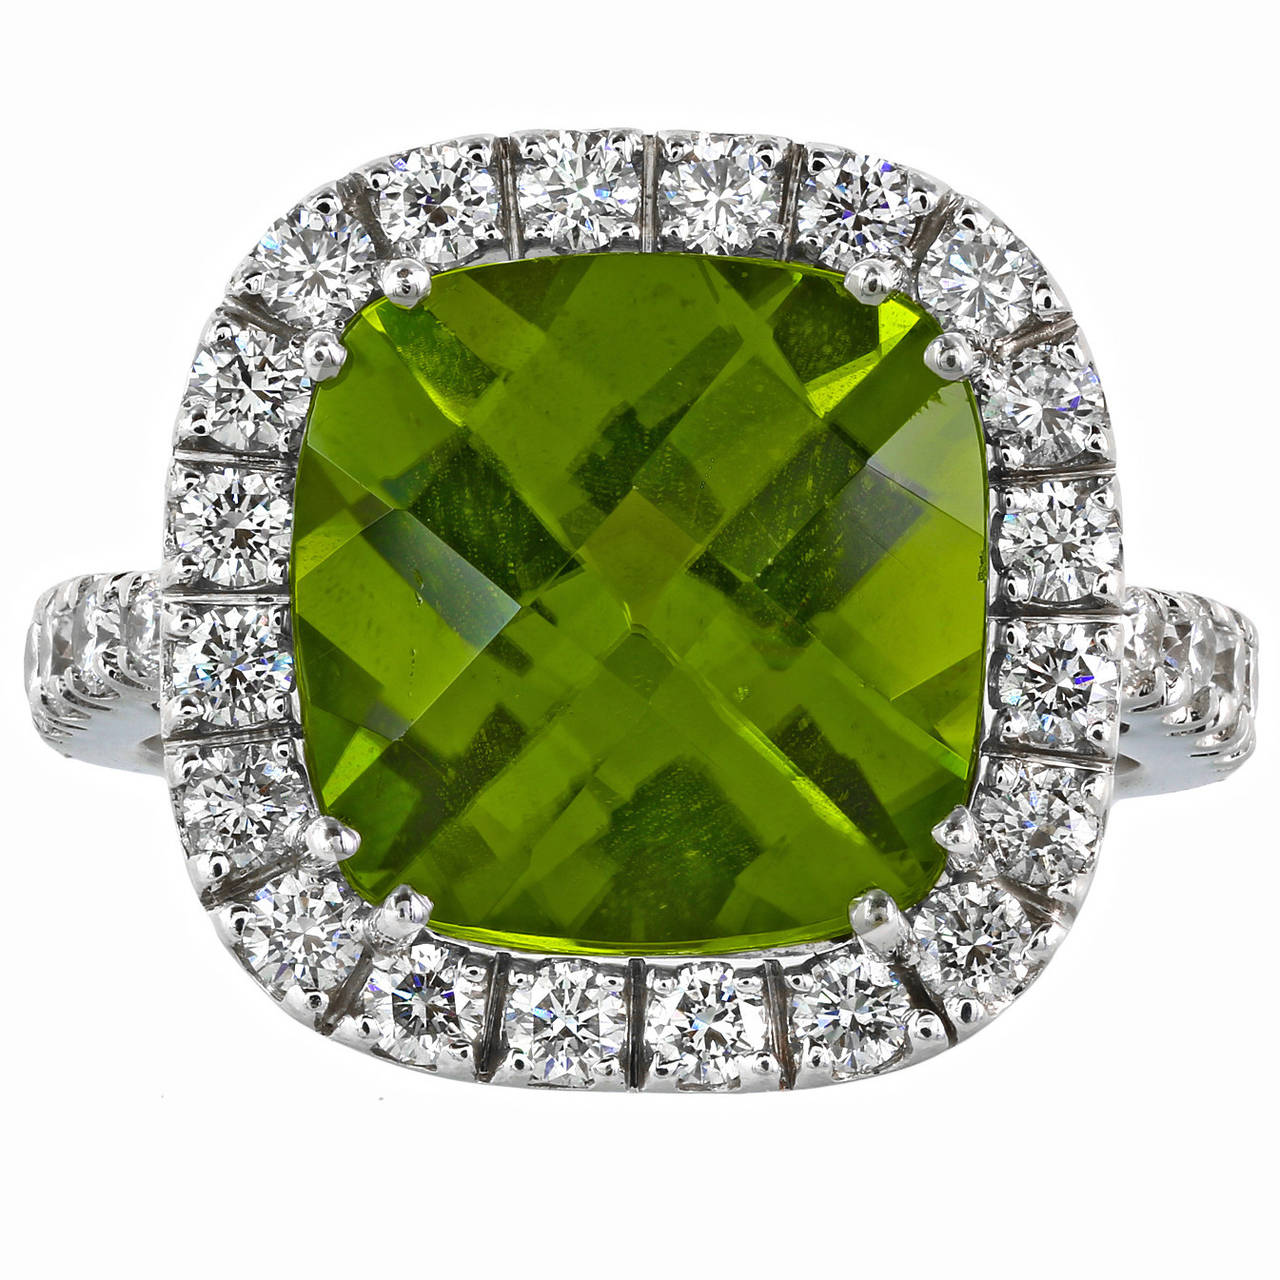 6.78 Carat Peridot Diamond Gold Cluster Ring